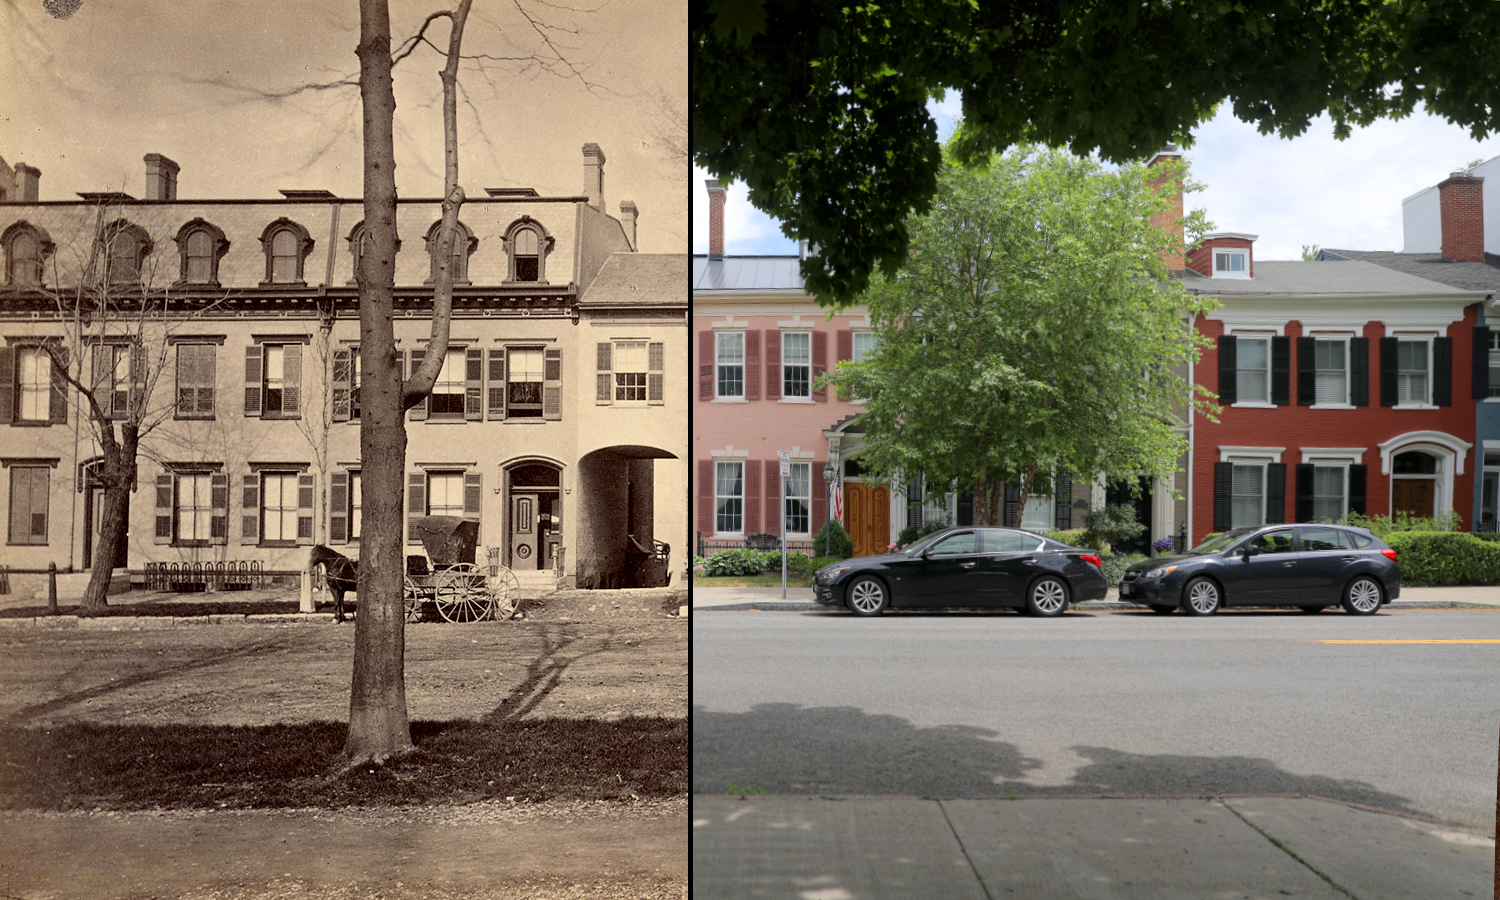 Save a new coat of paint, the row houses on S Main Street have not changed much since 1876.